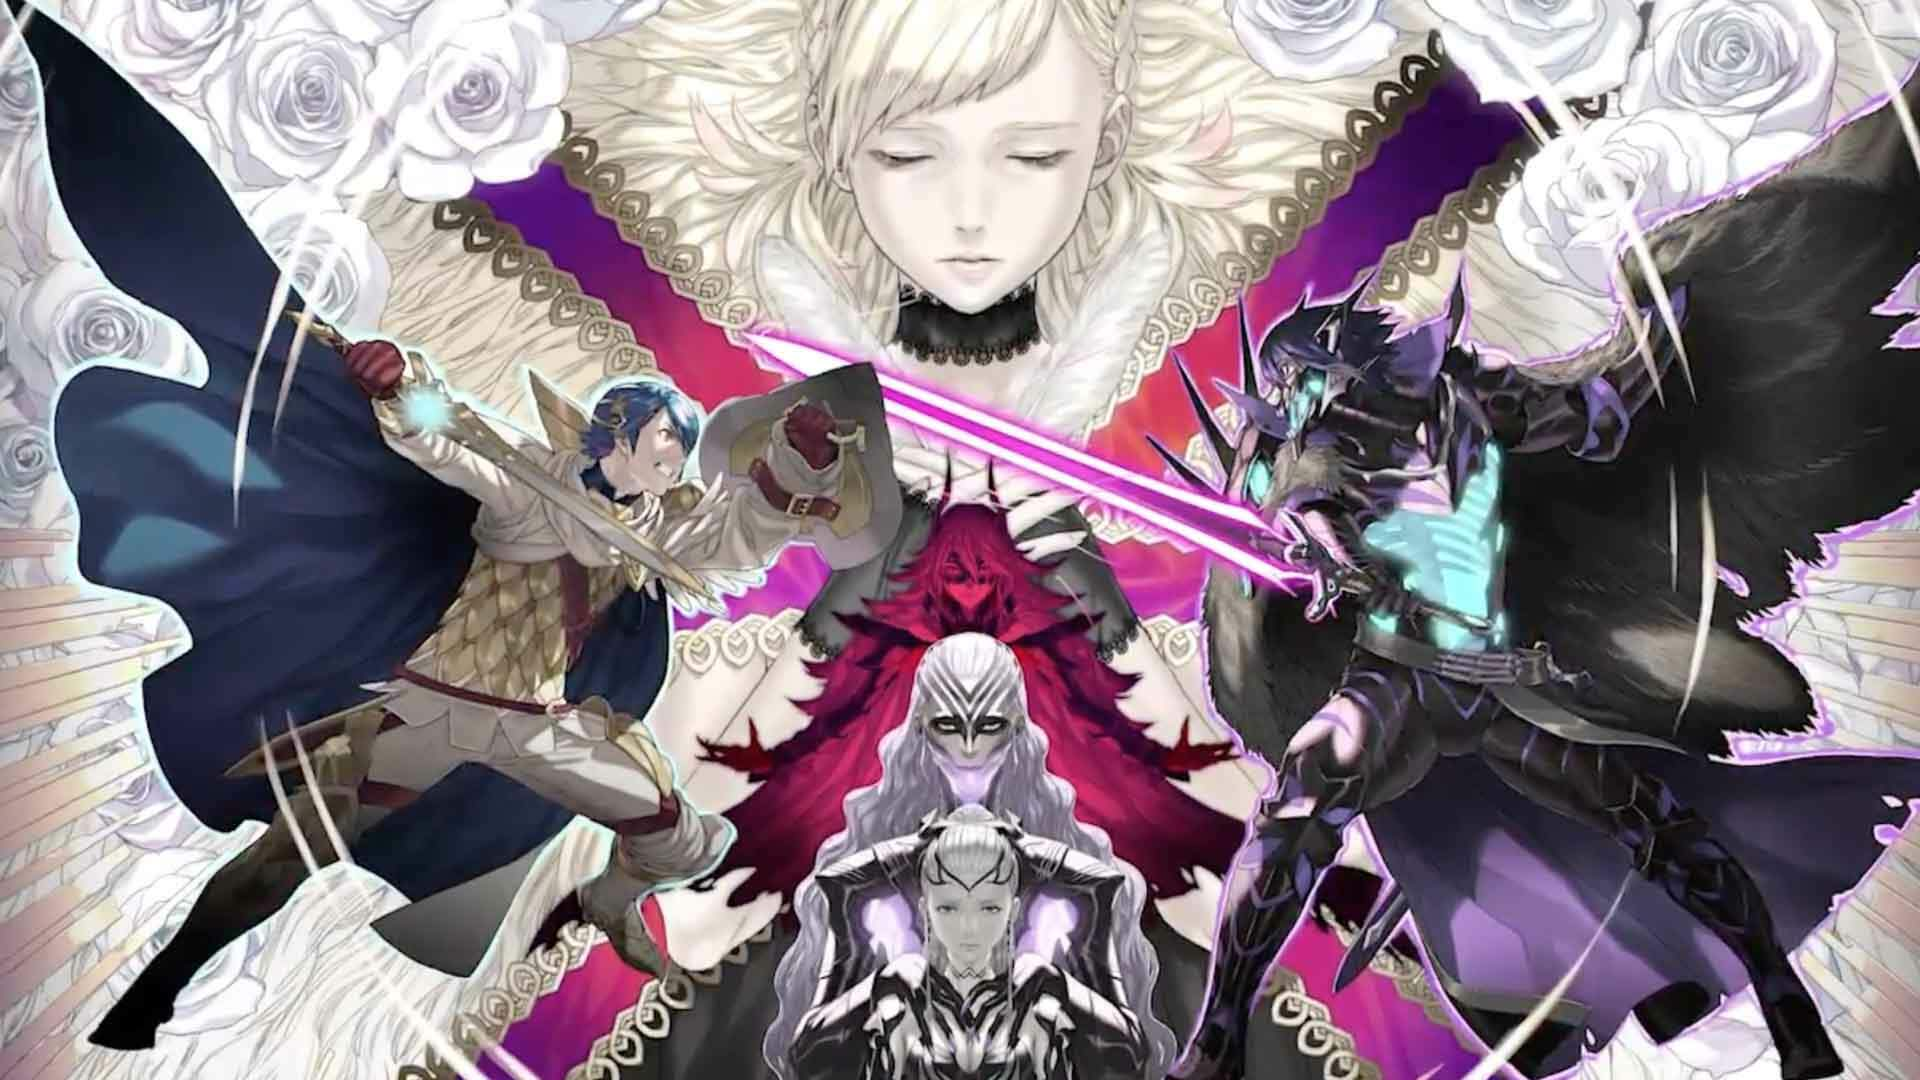 Fire Emblem is Nintendo's Hero in the Mobile Market While Mario Scrabbles for Scraps